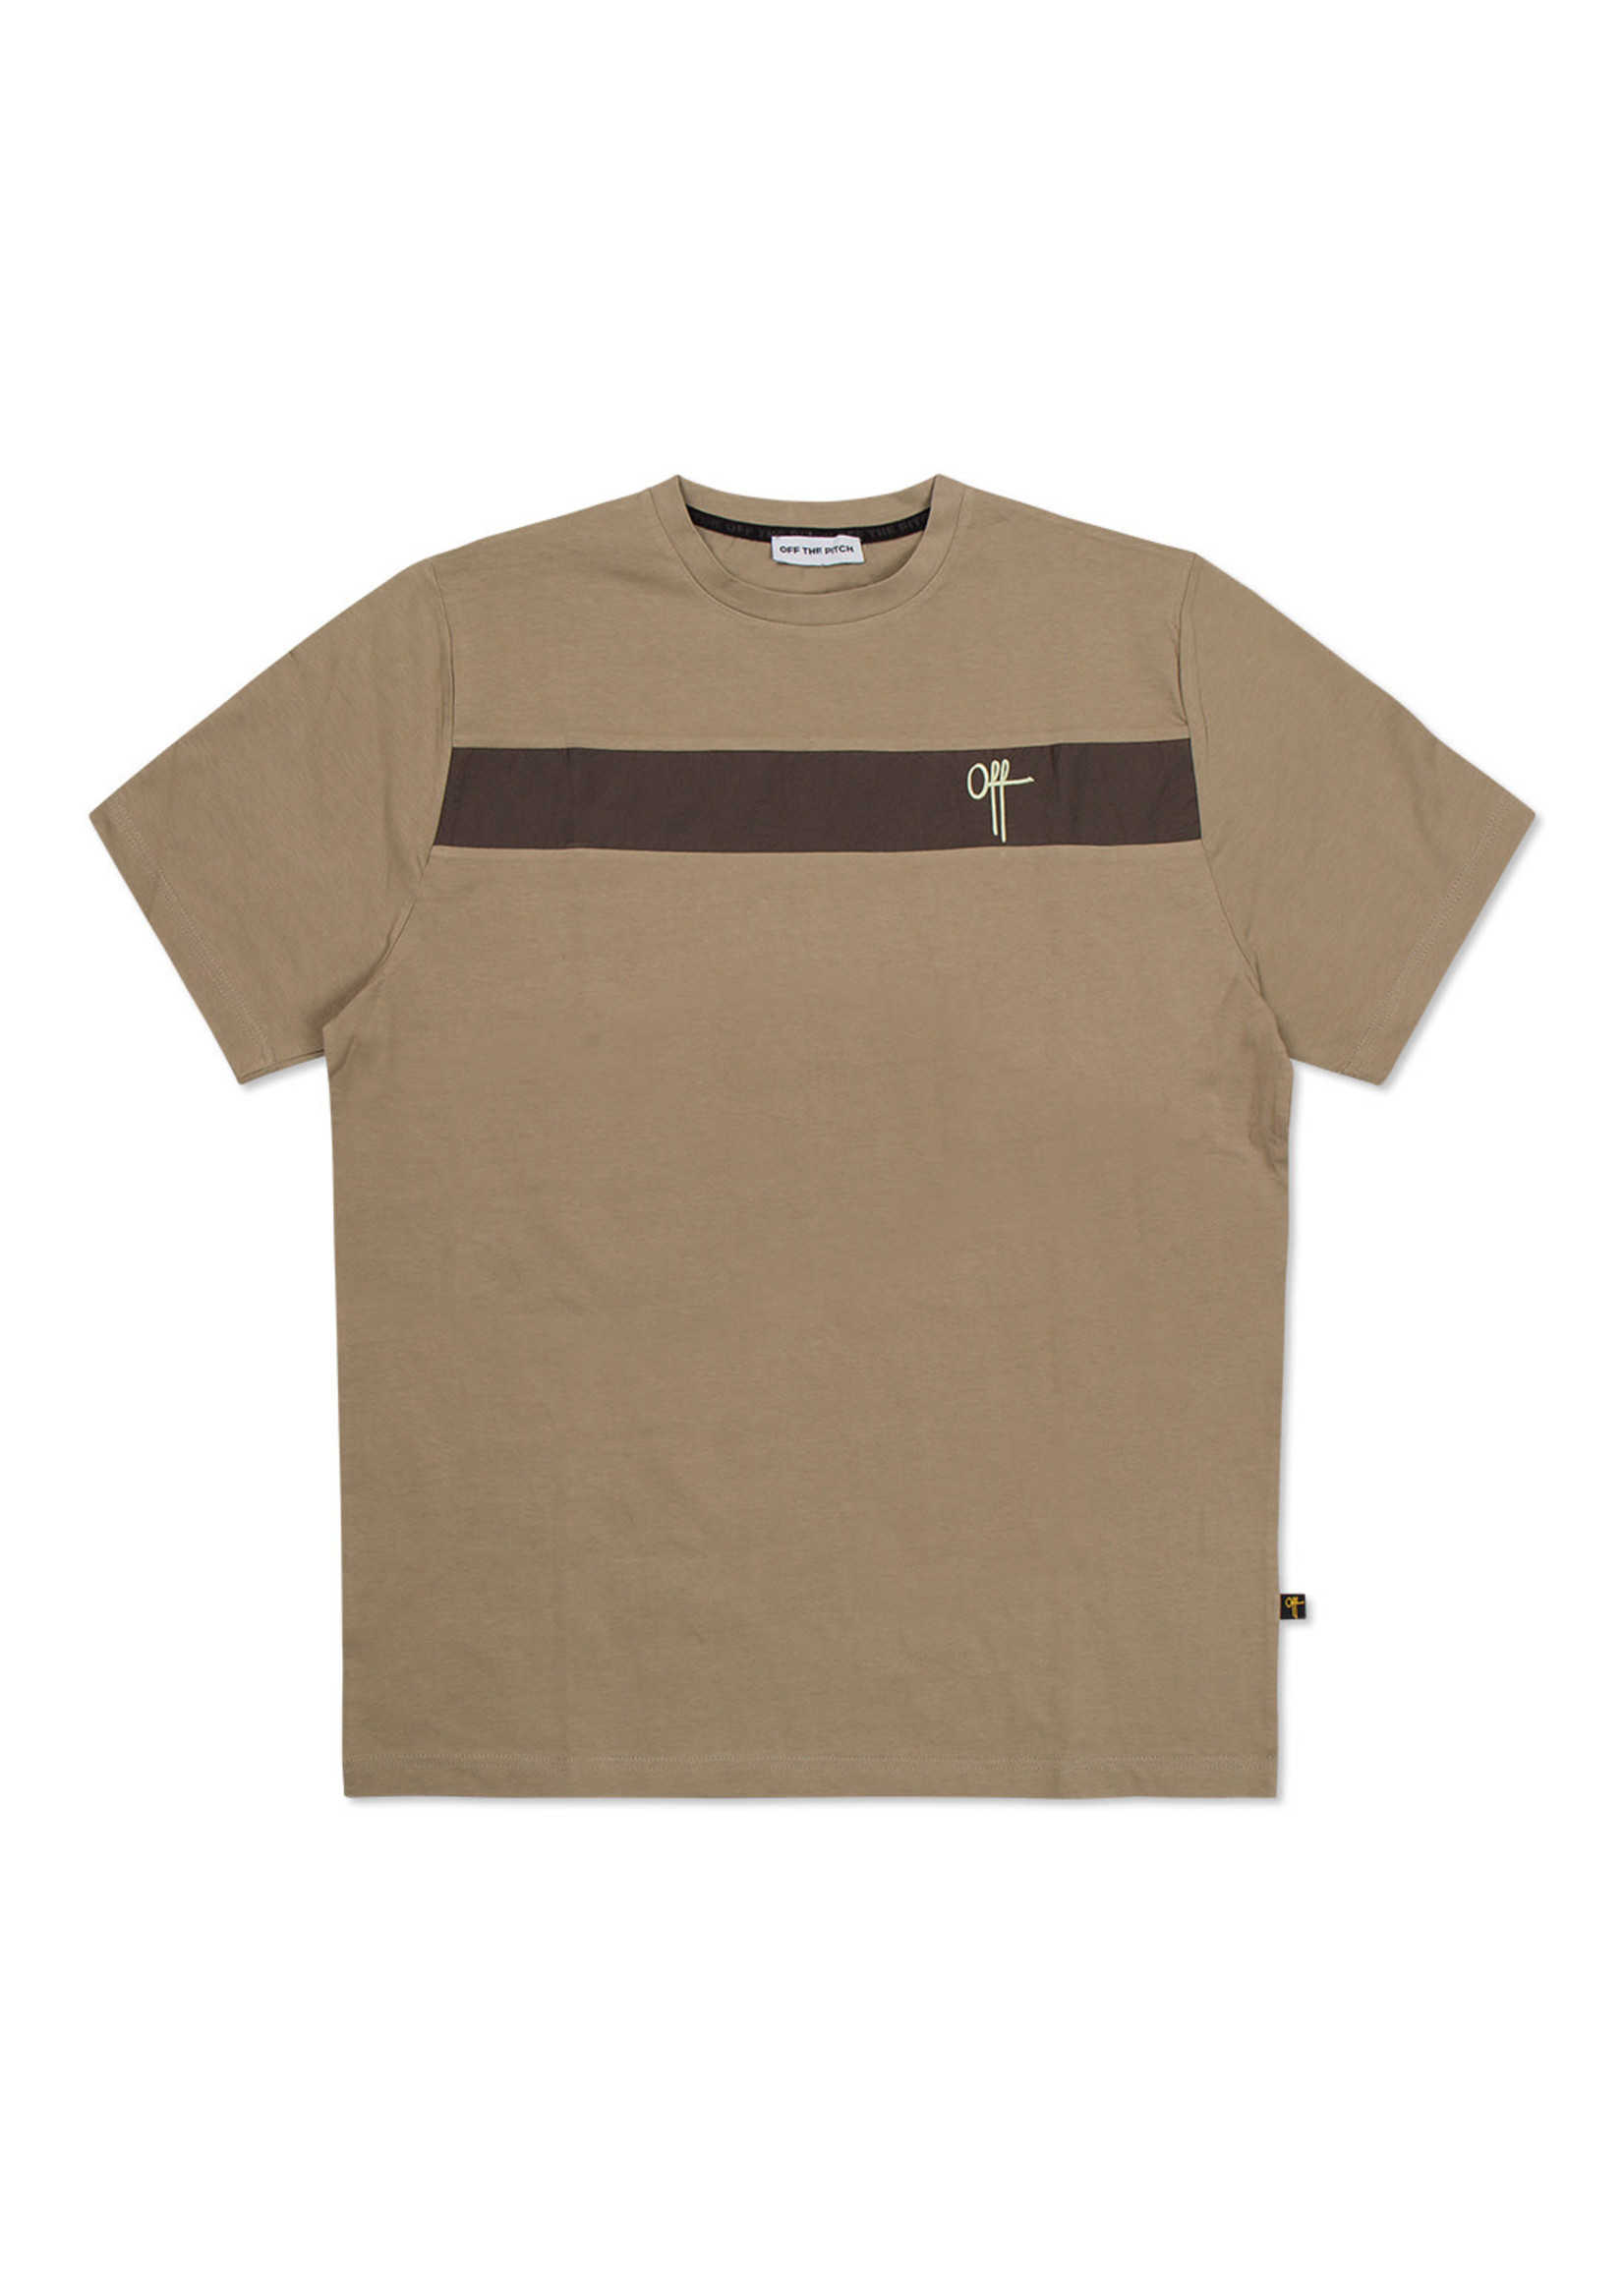 OFF THE PITCH OFF THE PITCH The Comet Tee - Green